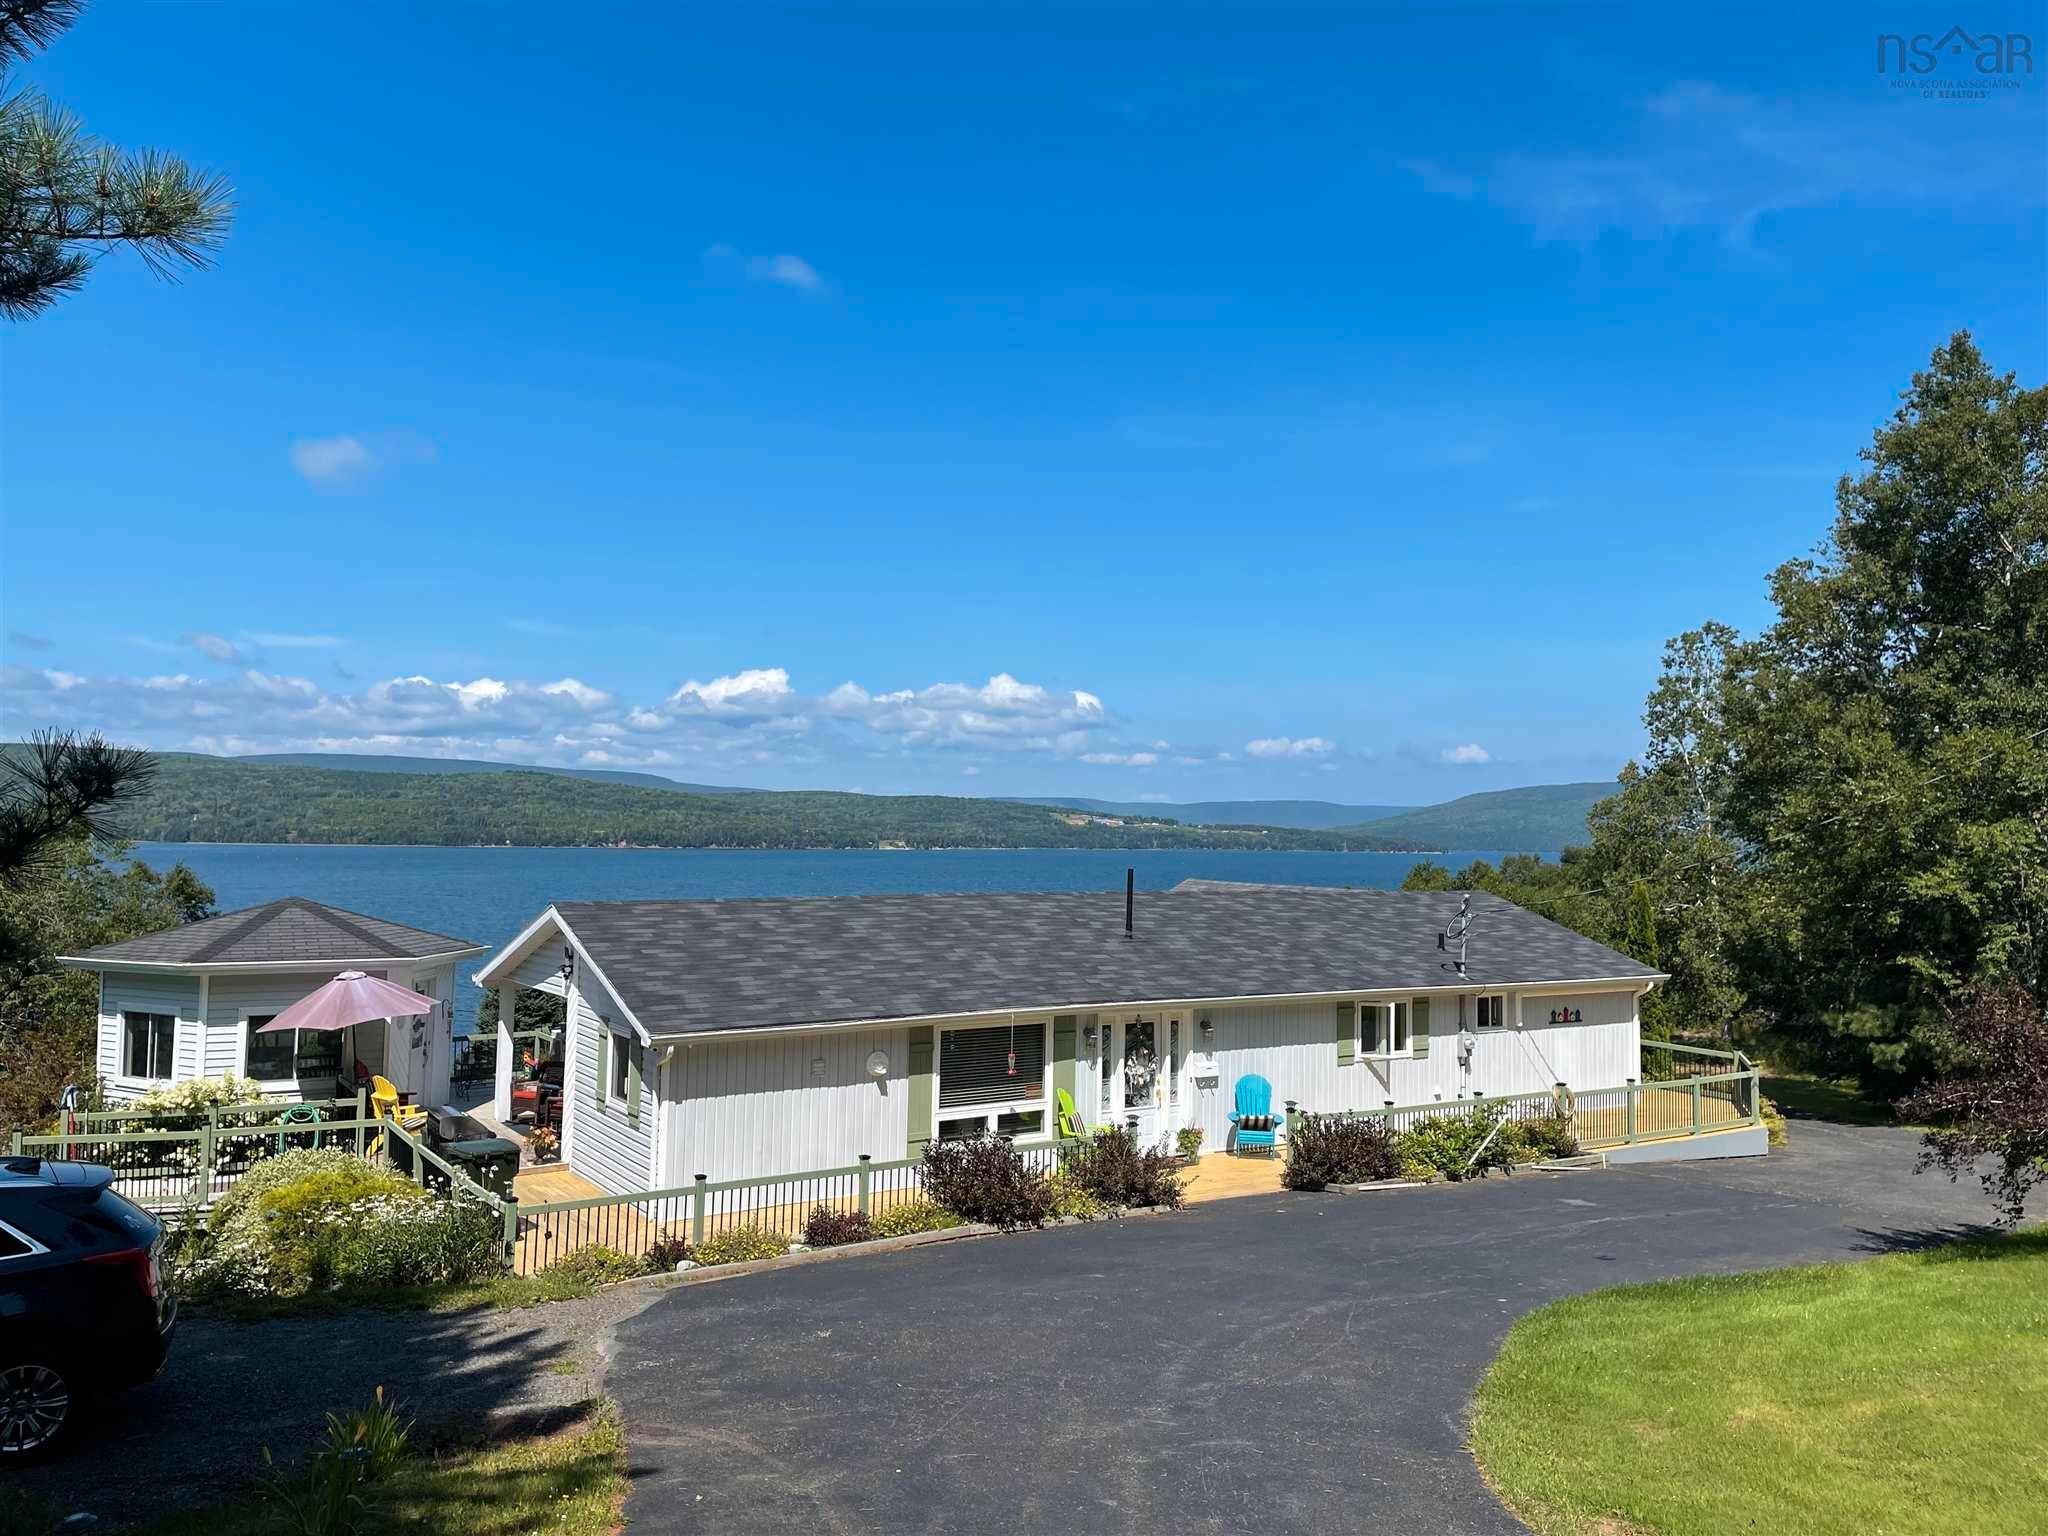 Photo 1: Photos: 3836 Highway 105 in South Haven: 209-Victoria County / Baddeck Residential for sale (Cape Breton)  : MLS®# 202120821